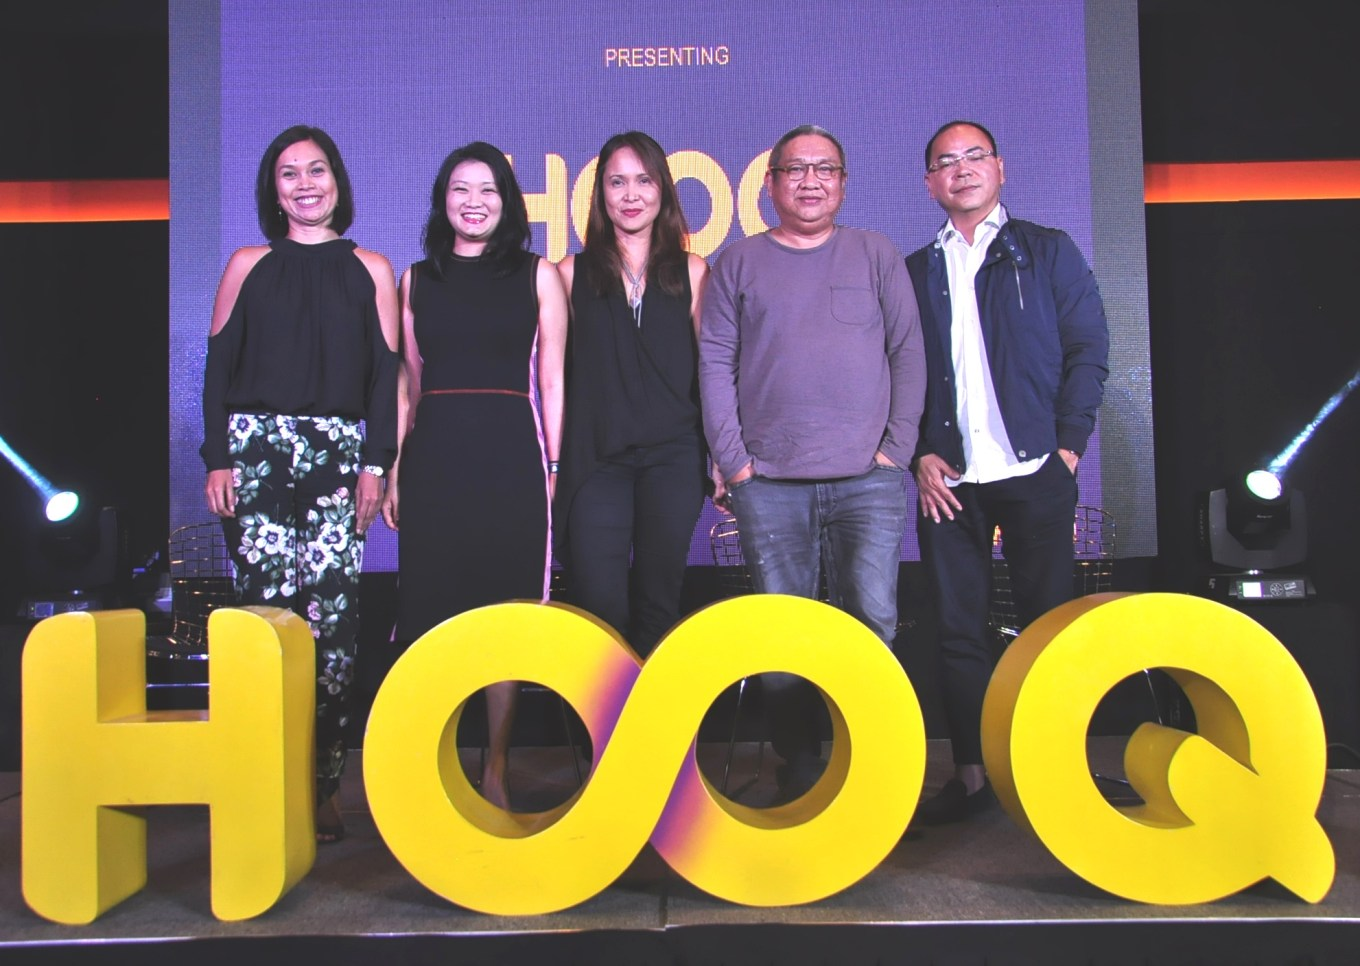 HOOQ Team- Sheila Paul, Marketing Head, Allison Chew Regional Brand and Communications Head, Jane Cruz-Walker, Country Manager and Jeff Remigio Programming and Content Head with one of t